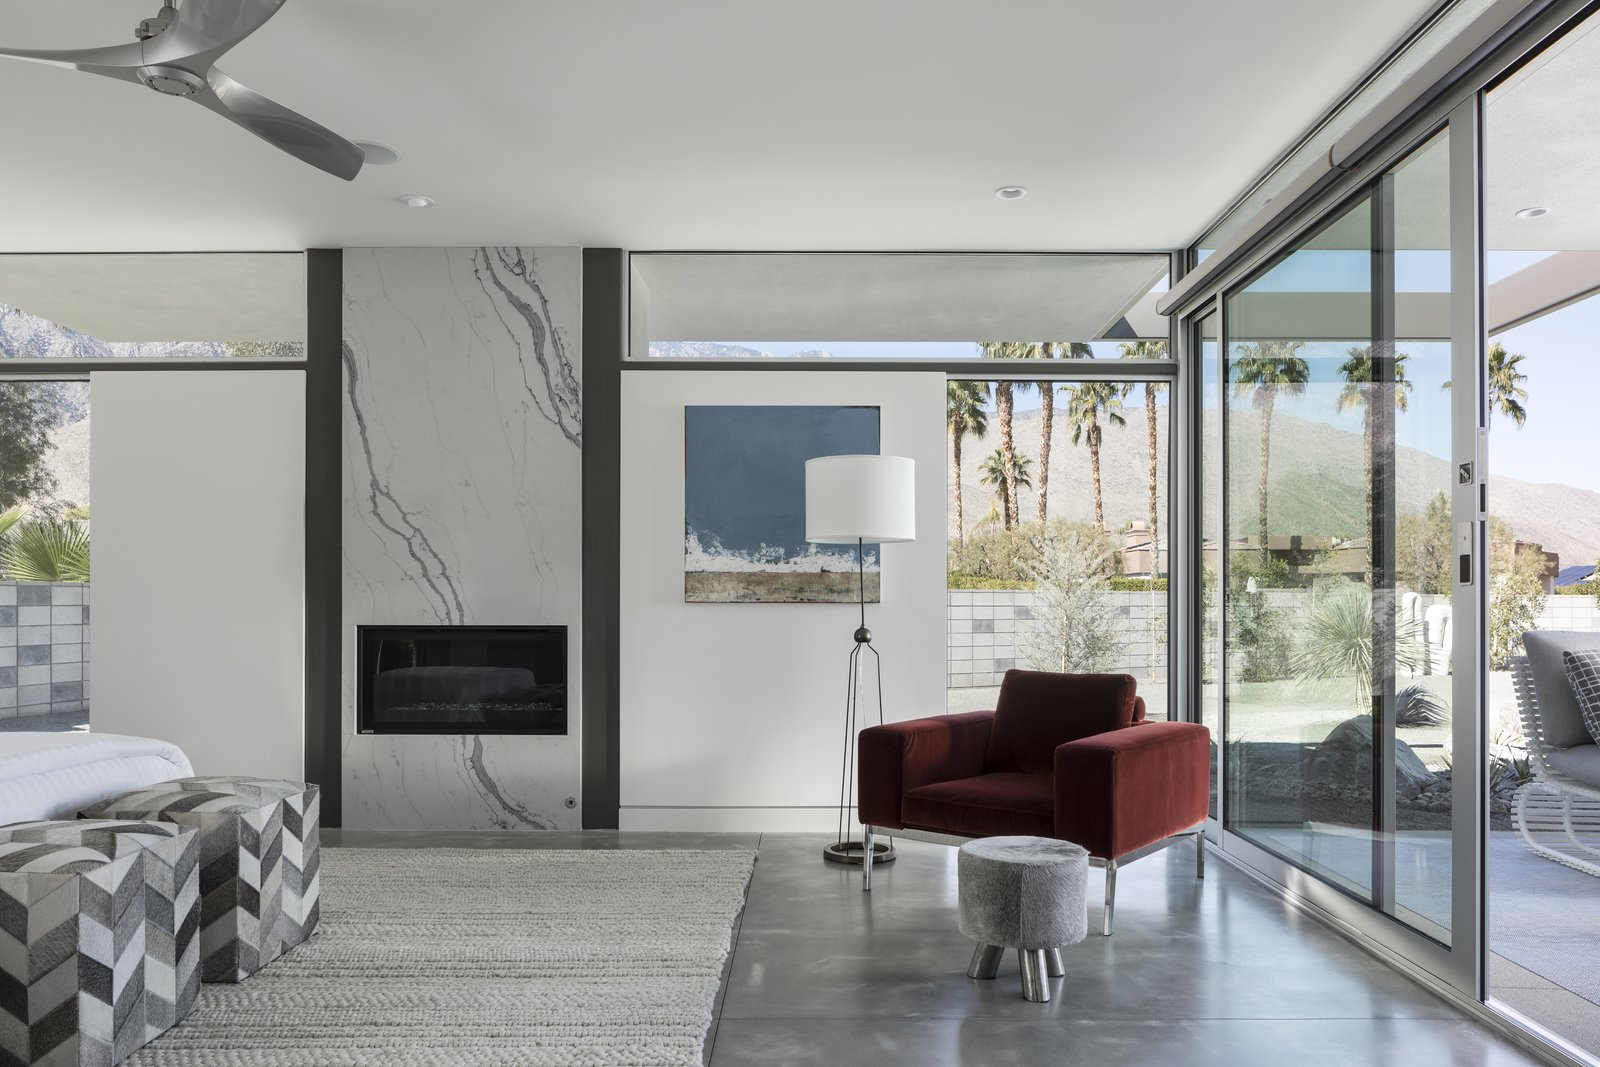 The Master Bedroom is completed with an elegant fireplace and glass surrounds.  Large, sliding glass doors open directly onto the outdoor patio.